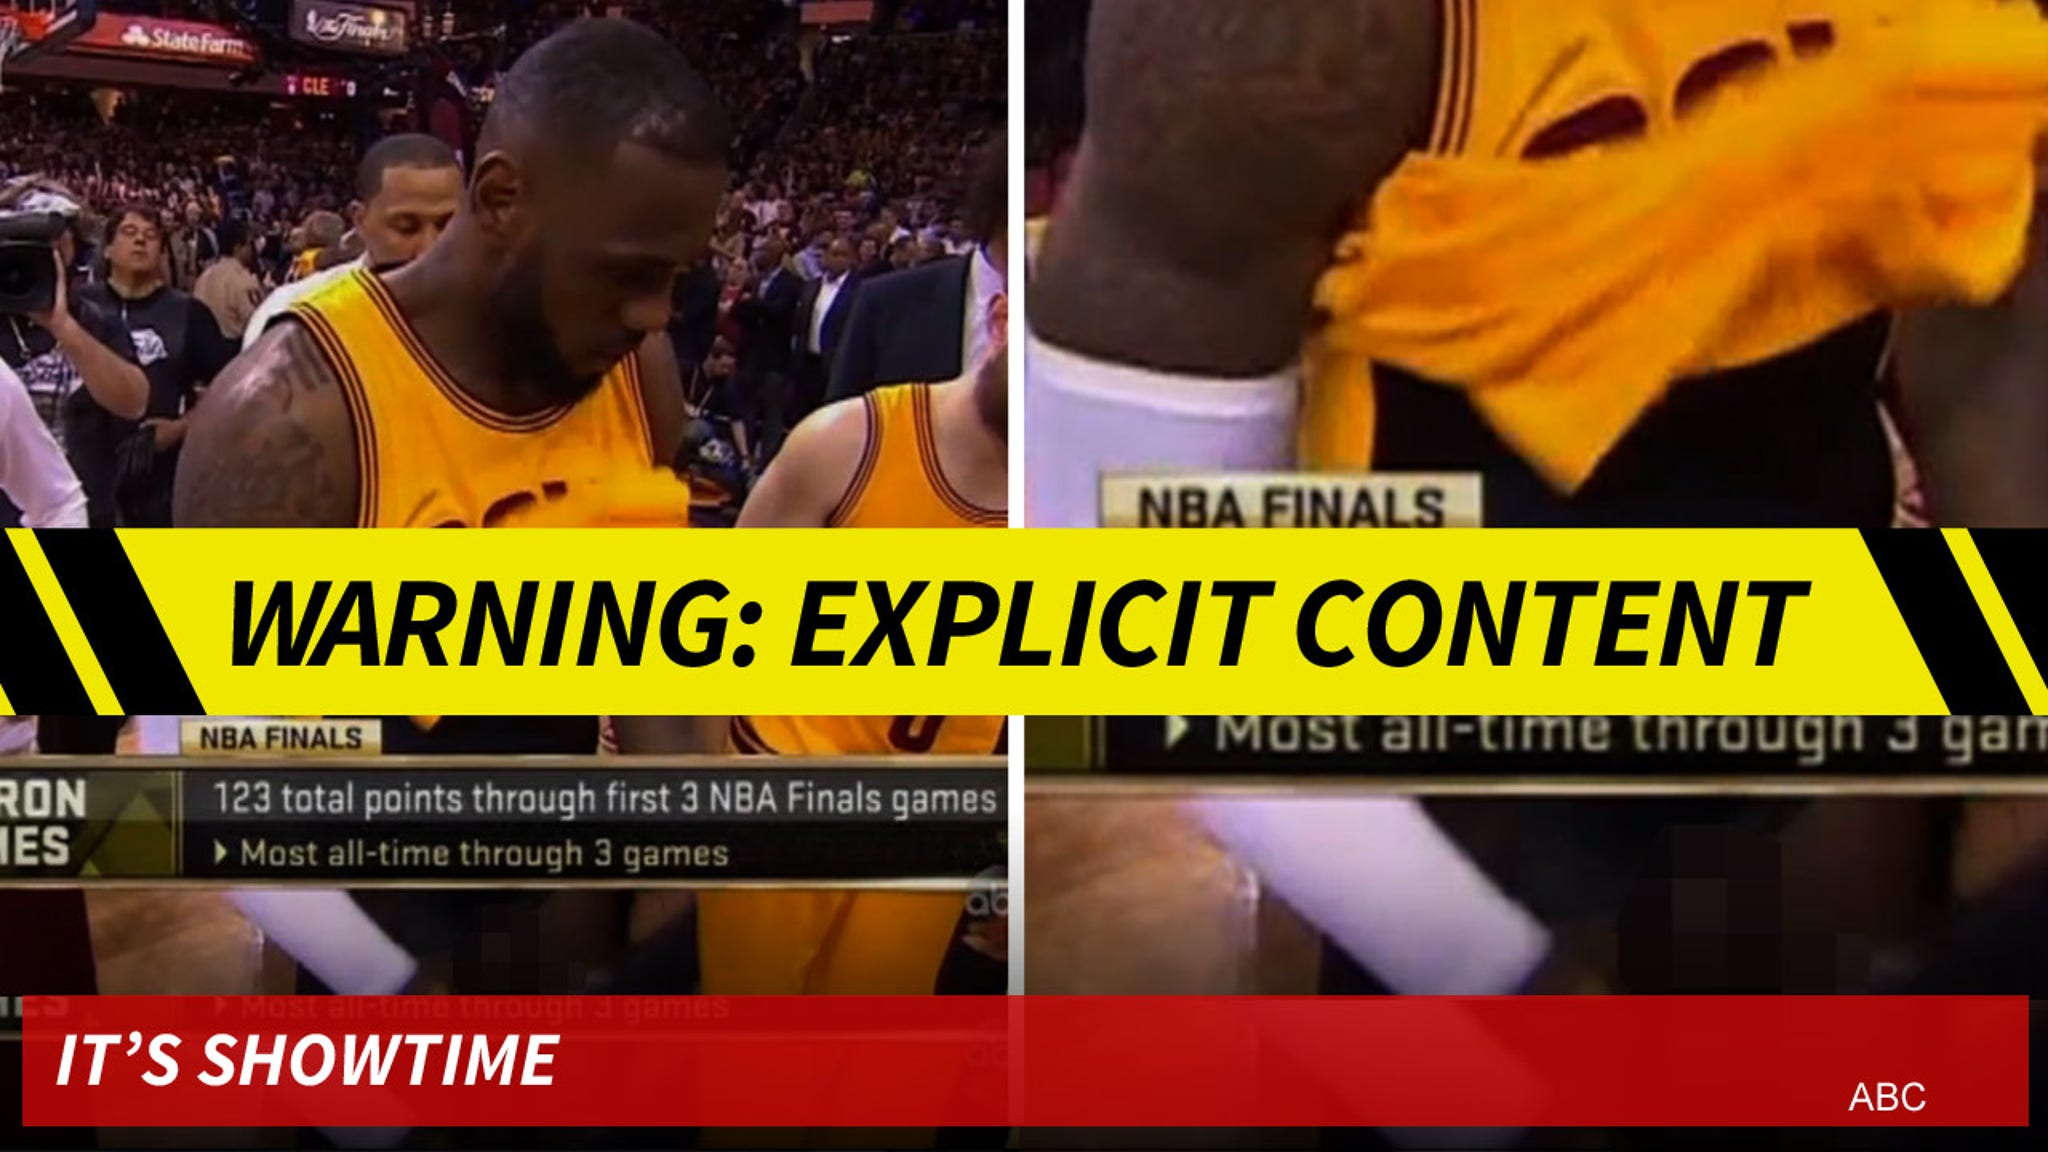 Lebron James Flashes Penis During Live TV Coverage Of NBA